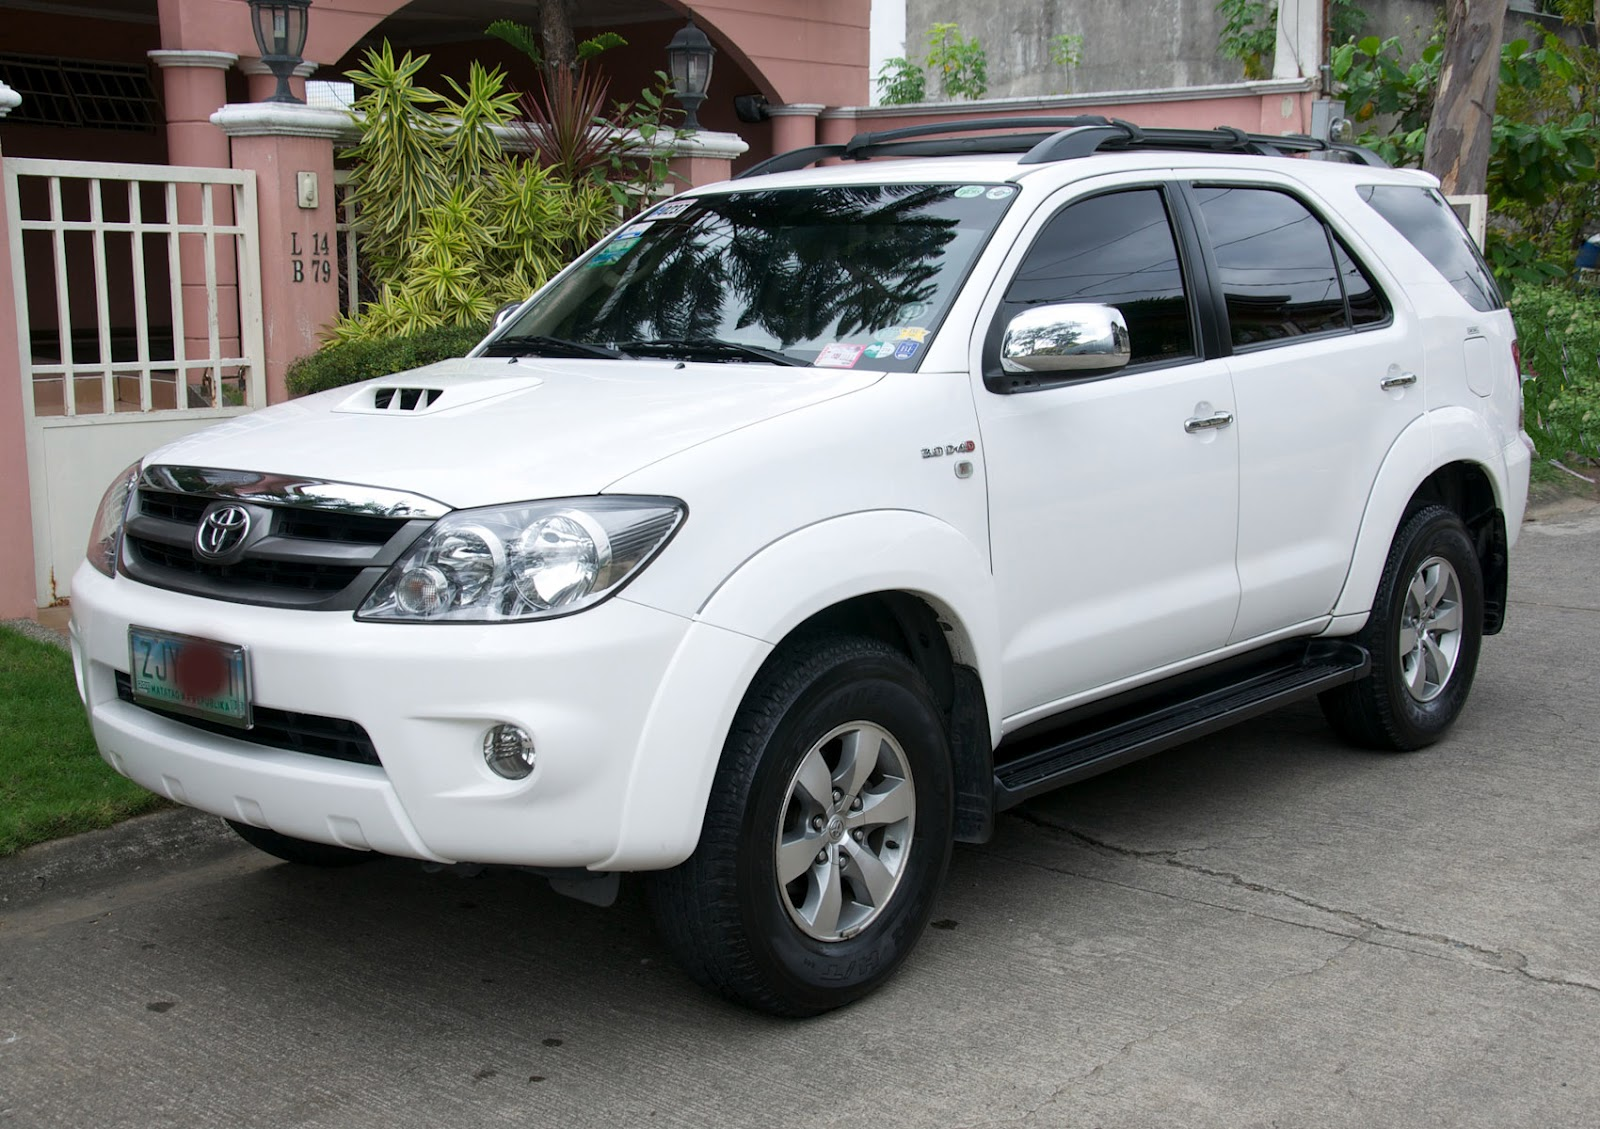 Best Toyota Fortuner Wallpapers Part 8 Best Cars Hd   Fortuner Car 1600x1129